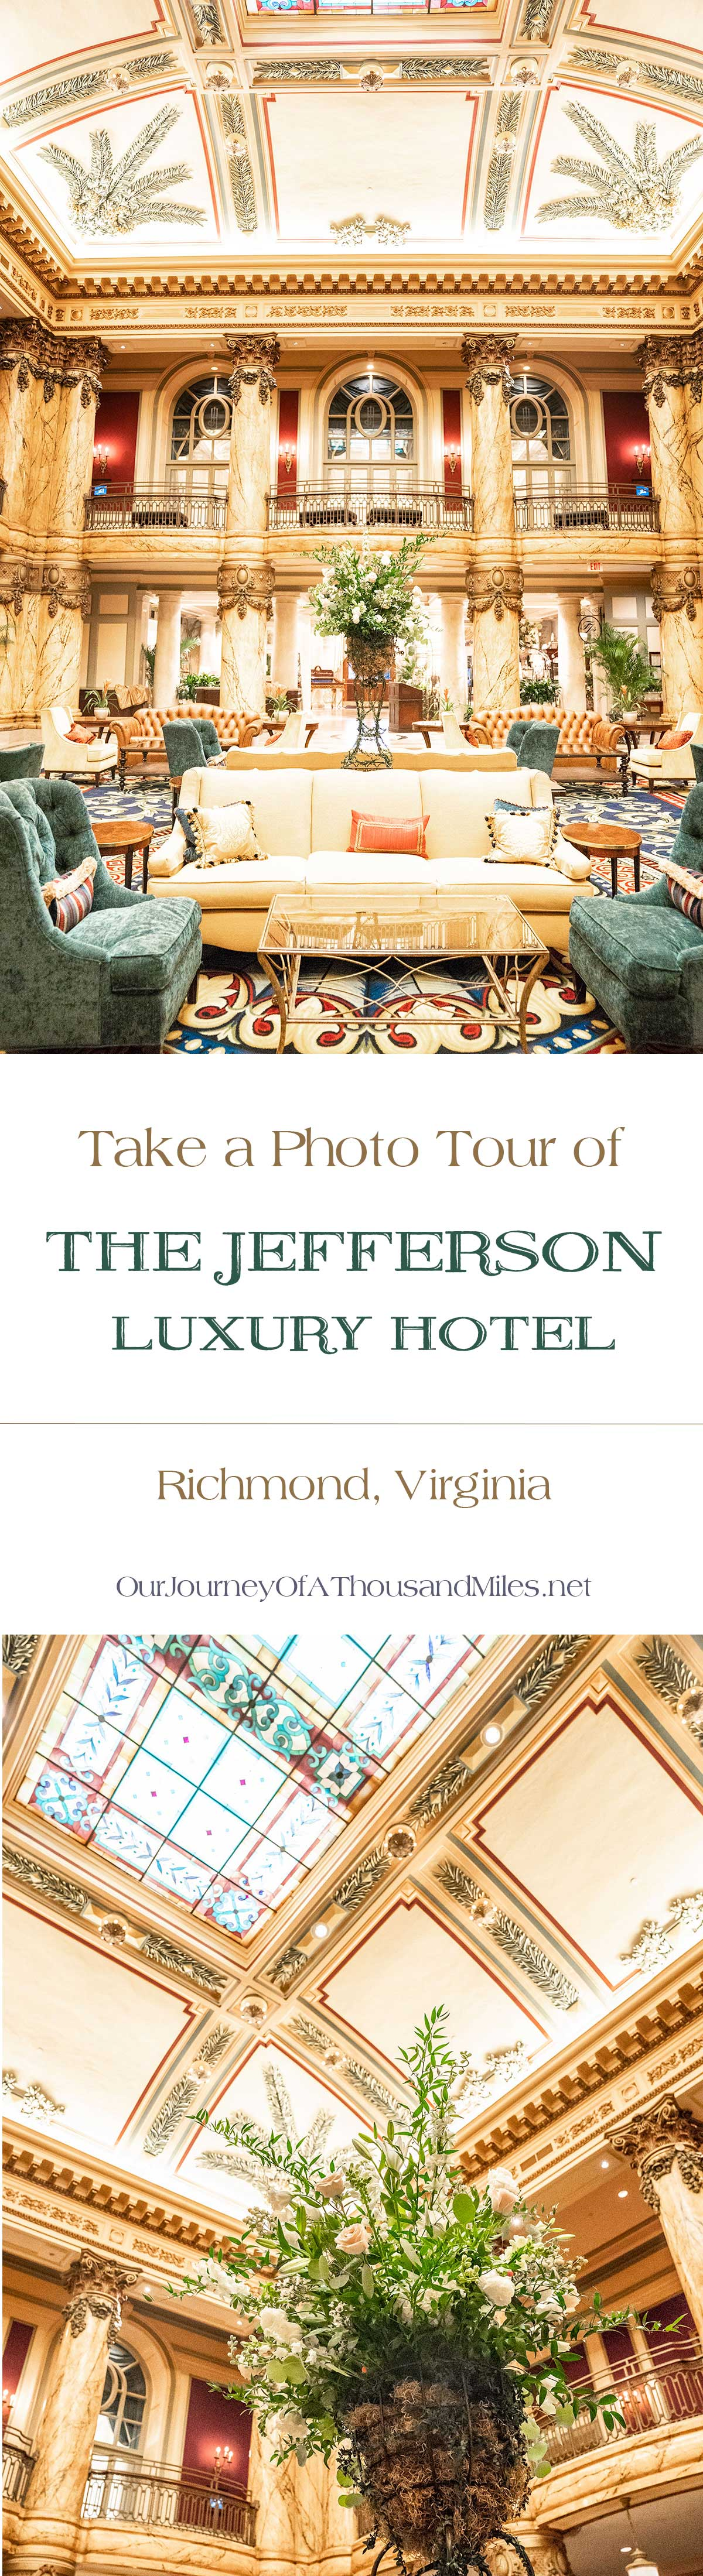 Take-A-Photo-Tour-of-The-Jefferson-Luxury-Hotel-Richmond-Virginia